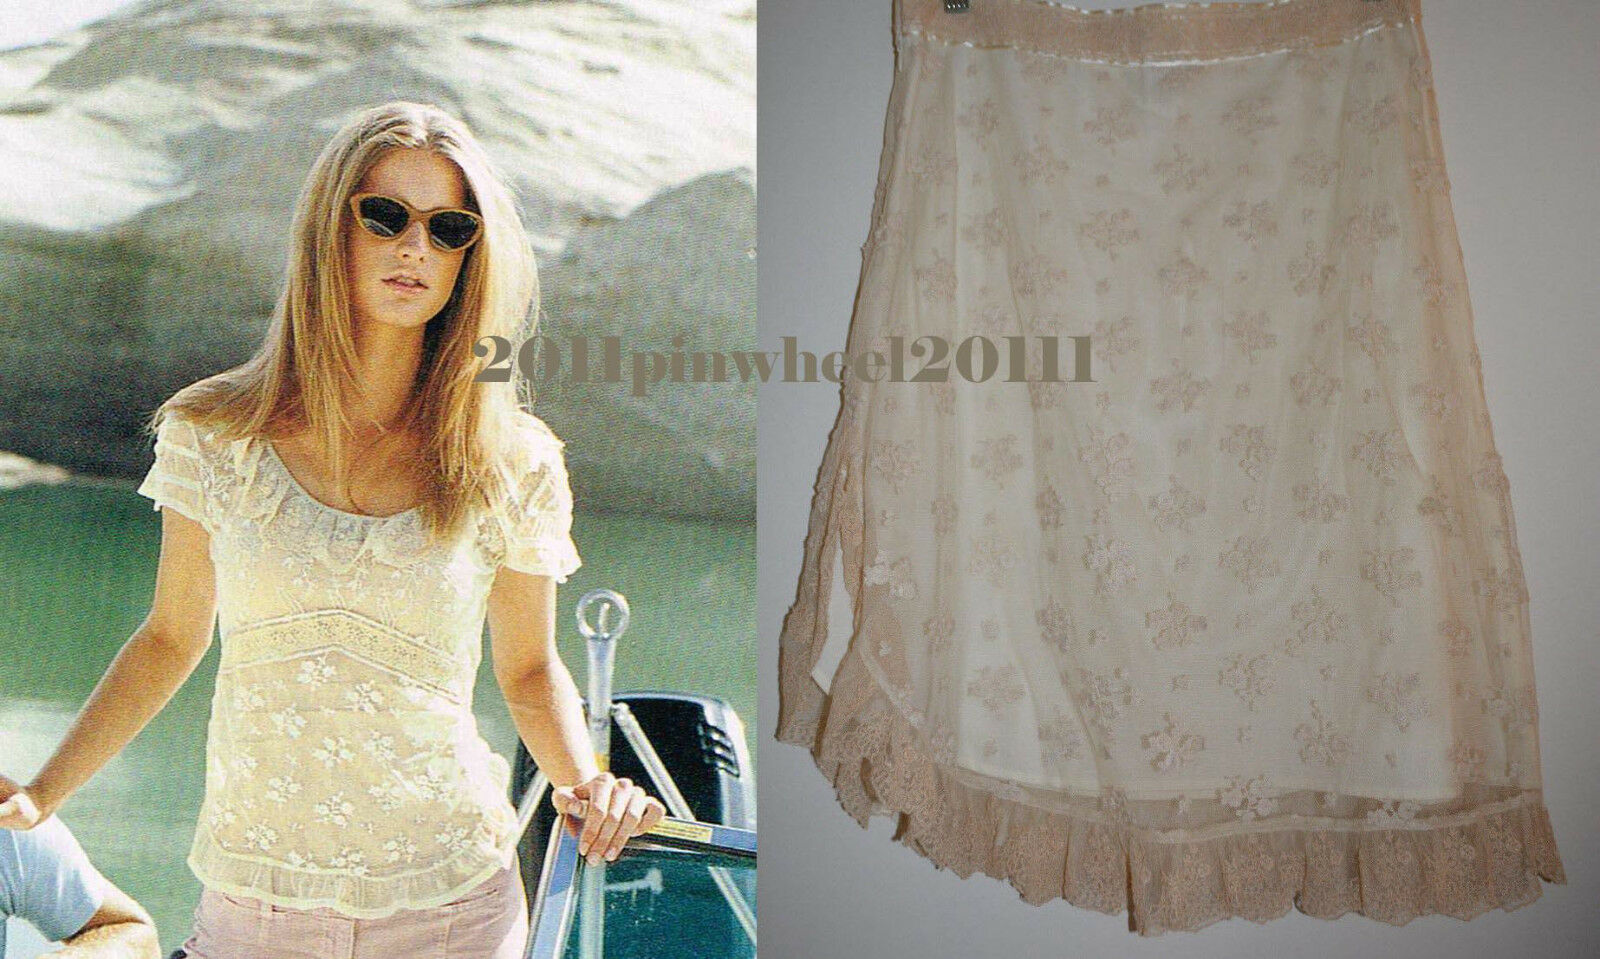 4 Anthropologie Delicate Floral Lace Overlay  Tuolumme Lace Skirt